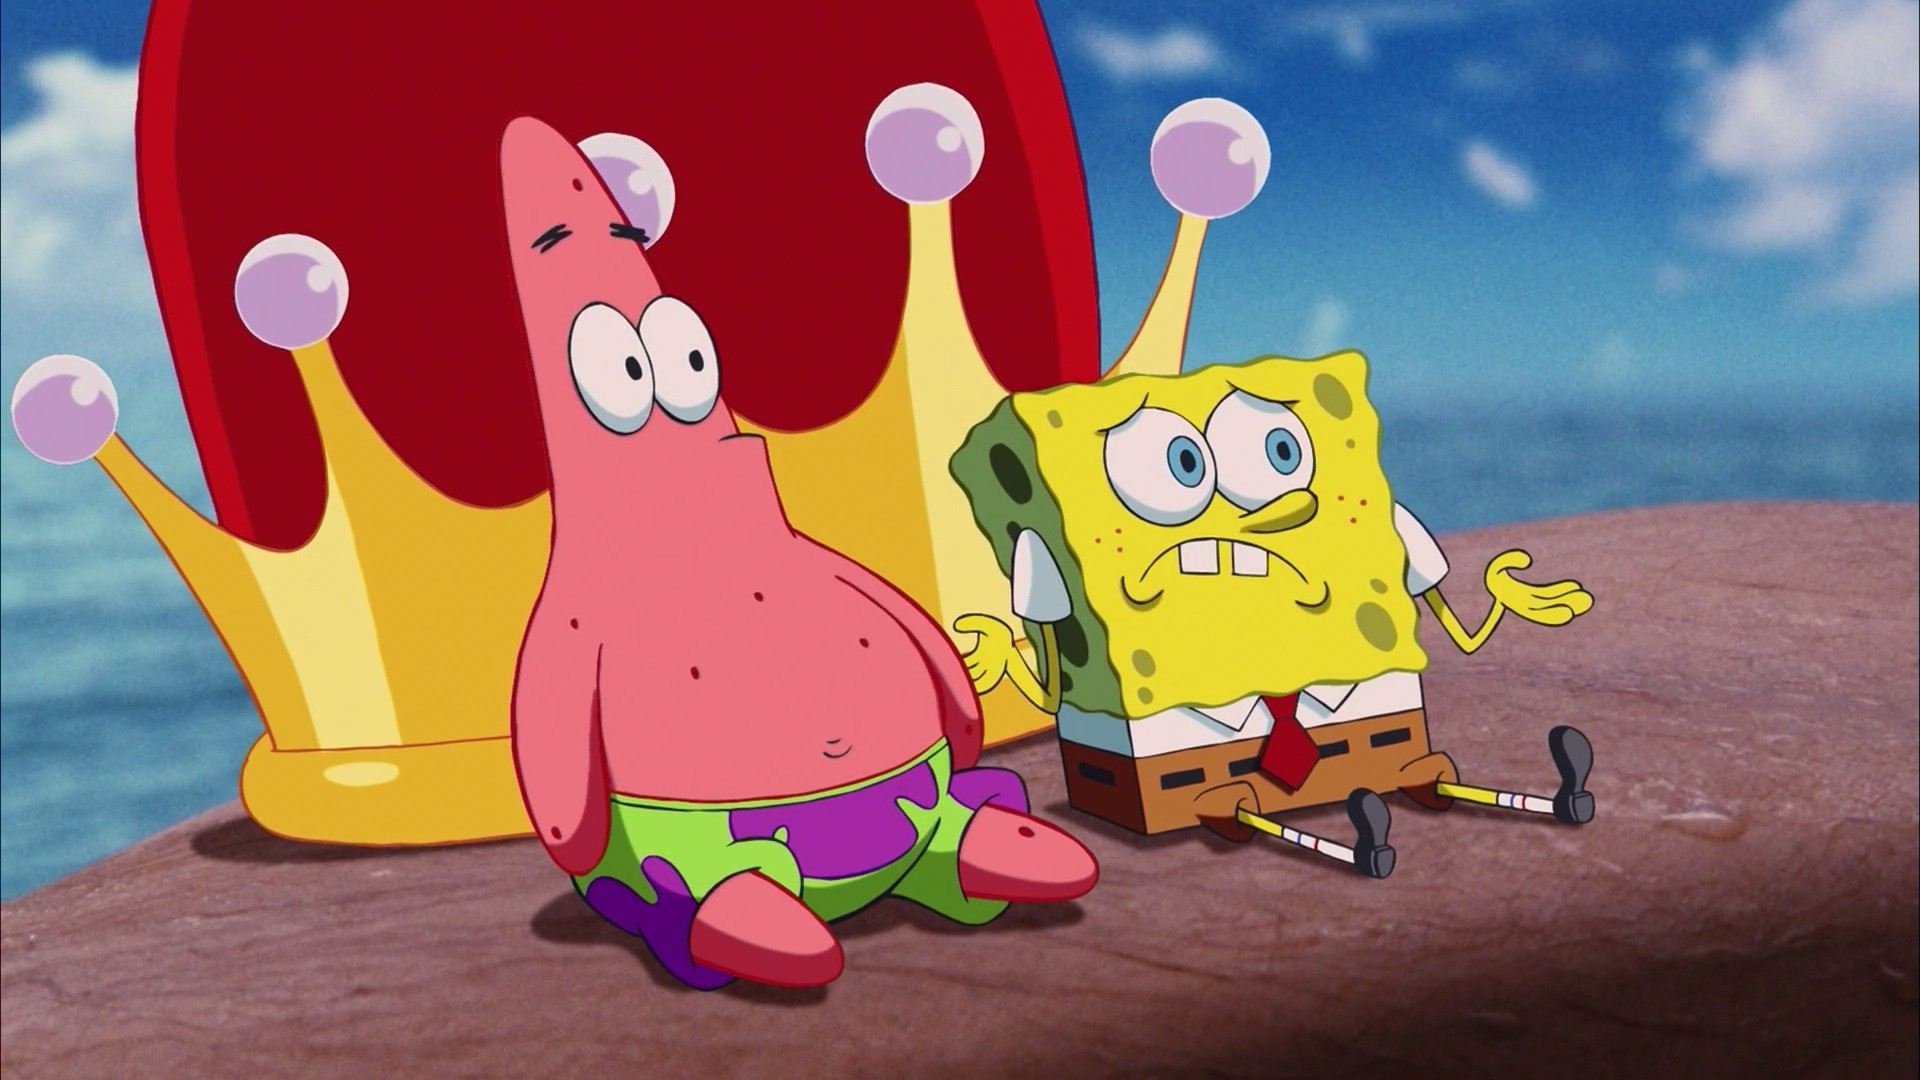 patrick star and spongebob desktop hd wallpaper 64266